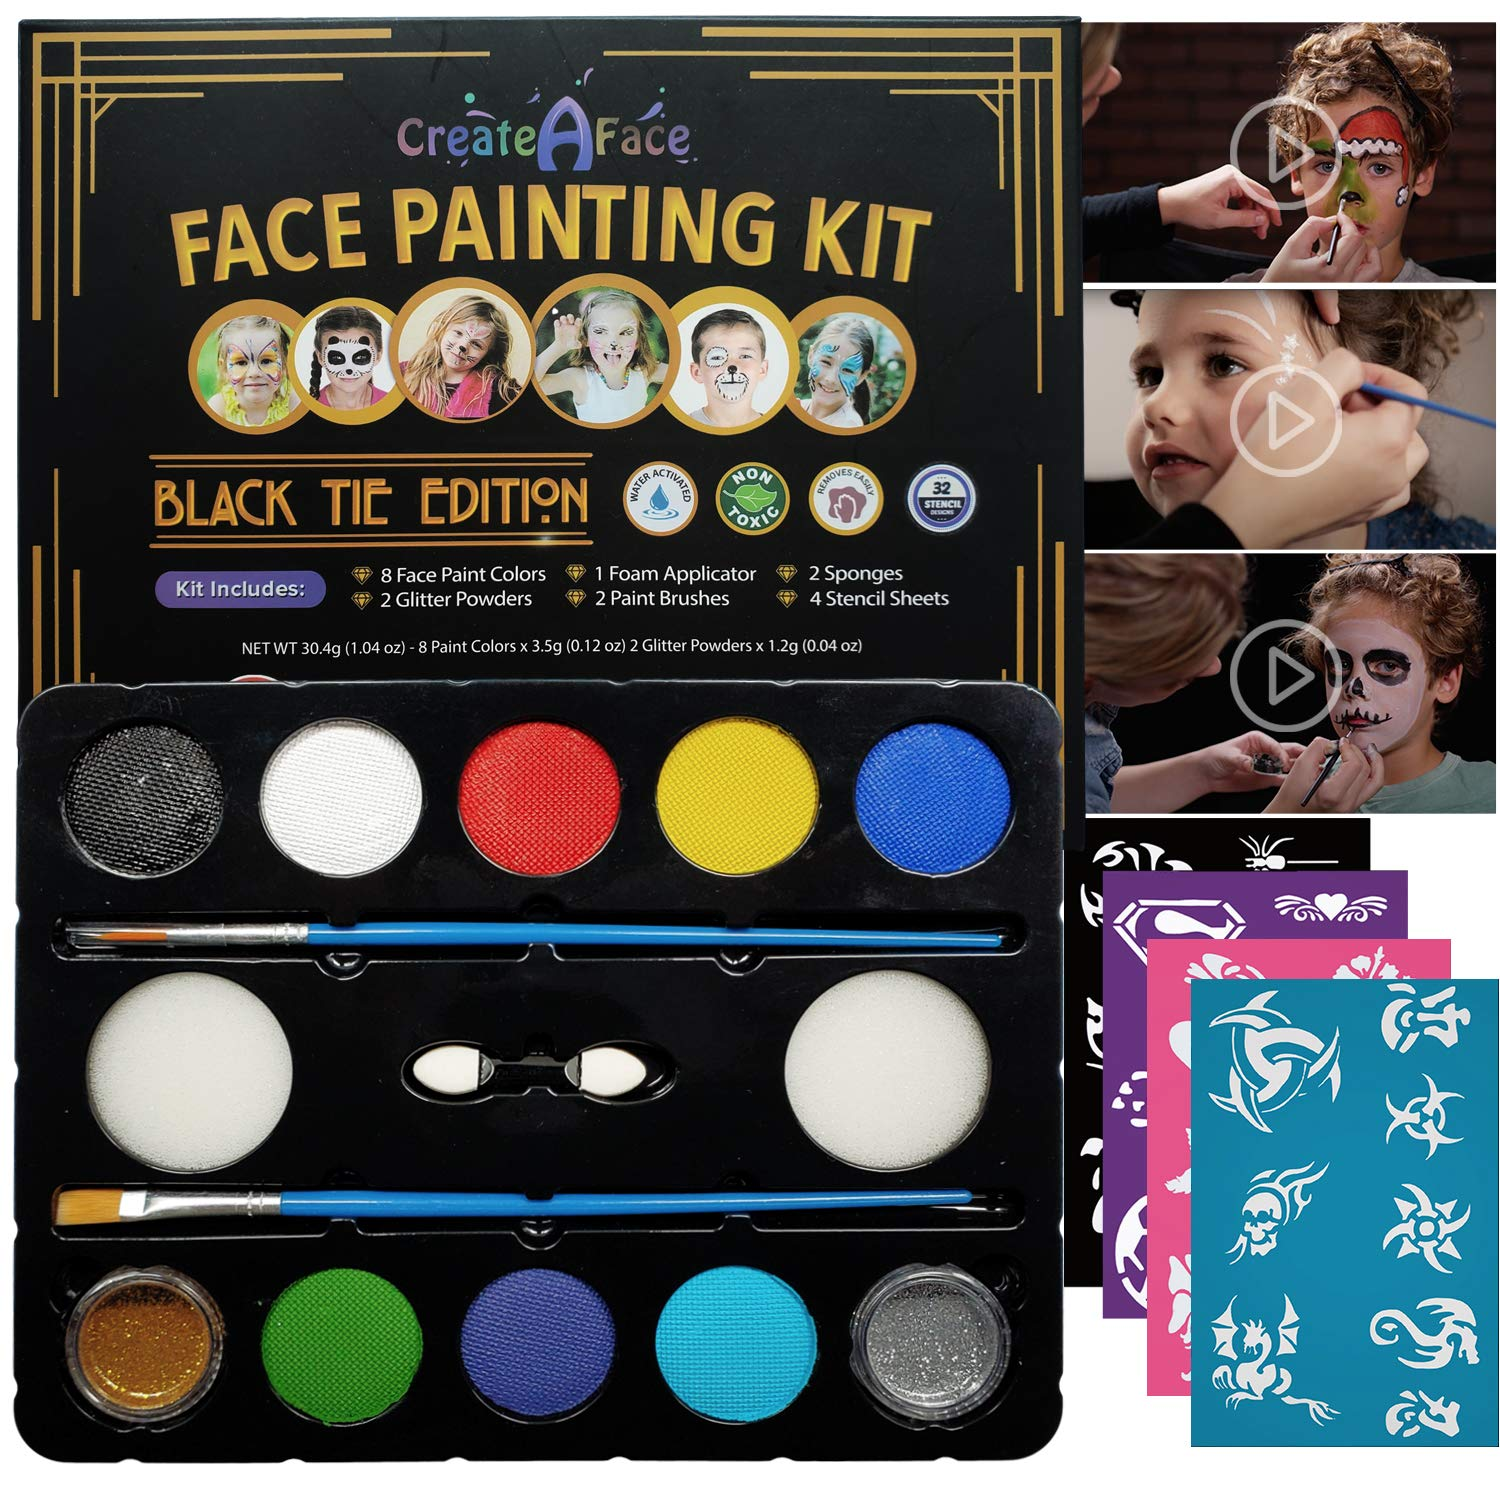 Face Painting Set for Parties with 32 Stencils (for 50-80 Face Paint Projects) 8 Colors, 2 Brushes, 2 Glitters, 2 Sponges & 2 Applicators Included - 100% Safe, Easy On and Off, Water Activated